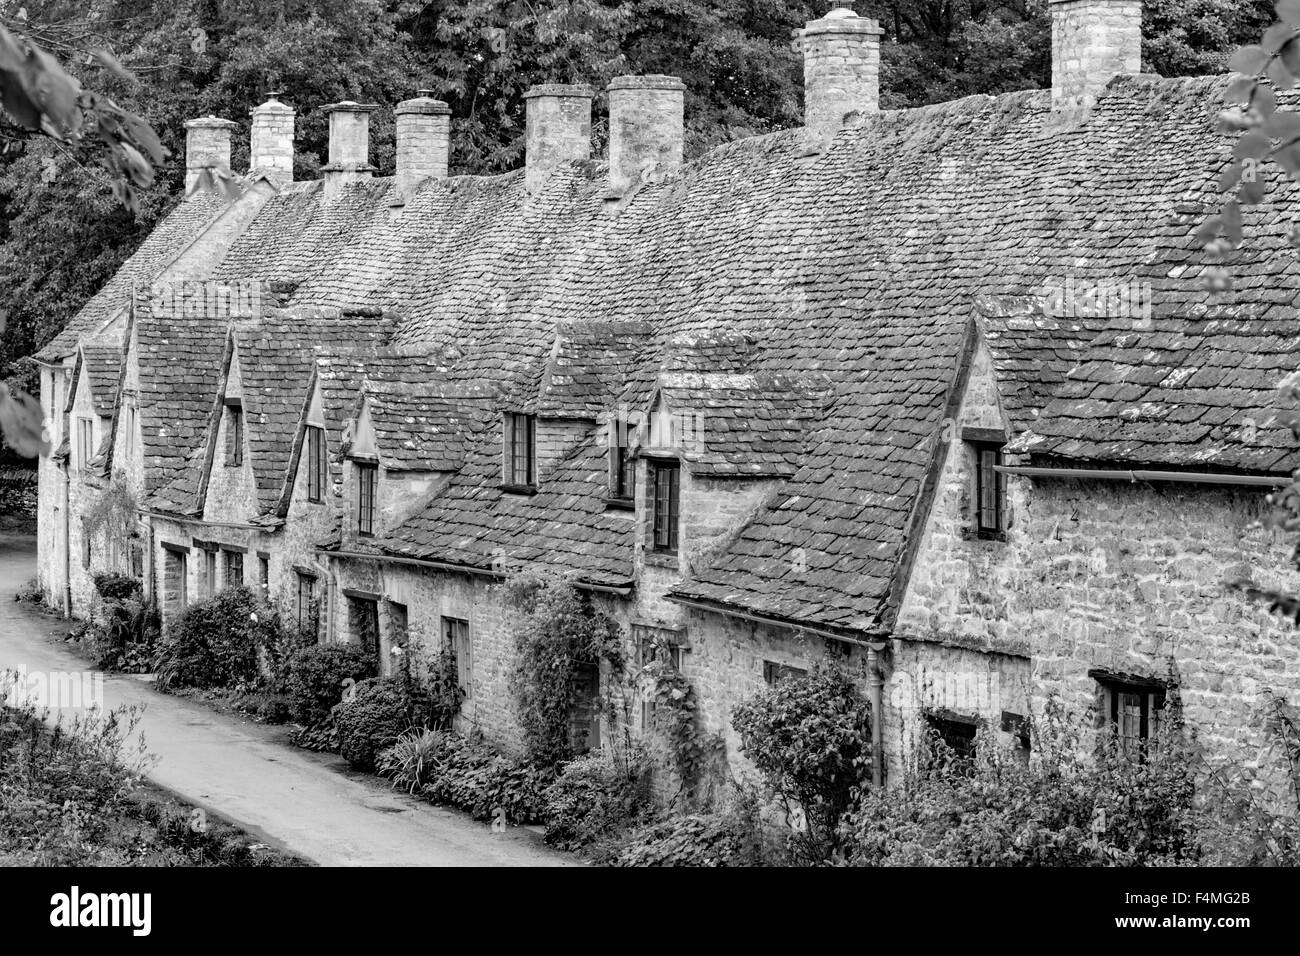 A monochrome view of Arlington Row in the Cotswold village of Bibury, Gloucestershire, England, UK - Stock Image